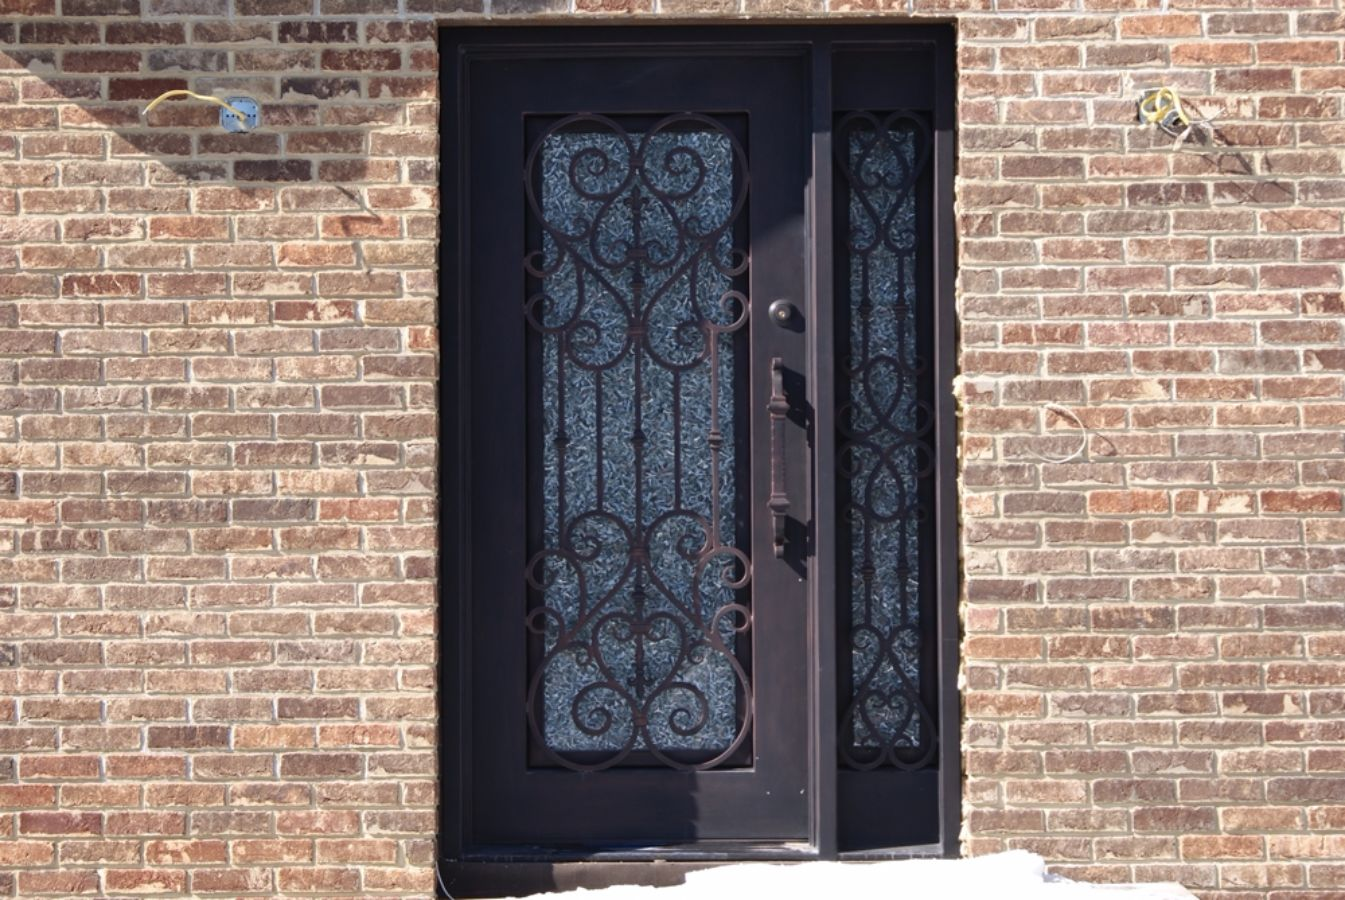 900 #8B6340 SH 09 Wrought Iron Door With Sidelight pic Metal Entry Doors With Sidelights 39211345